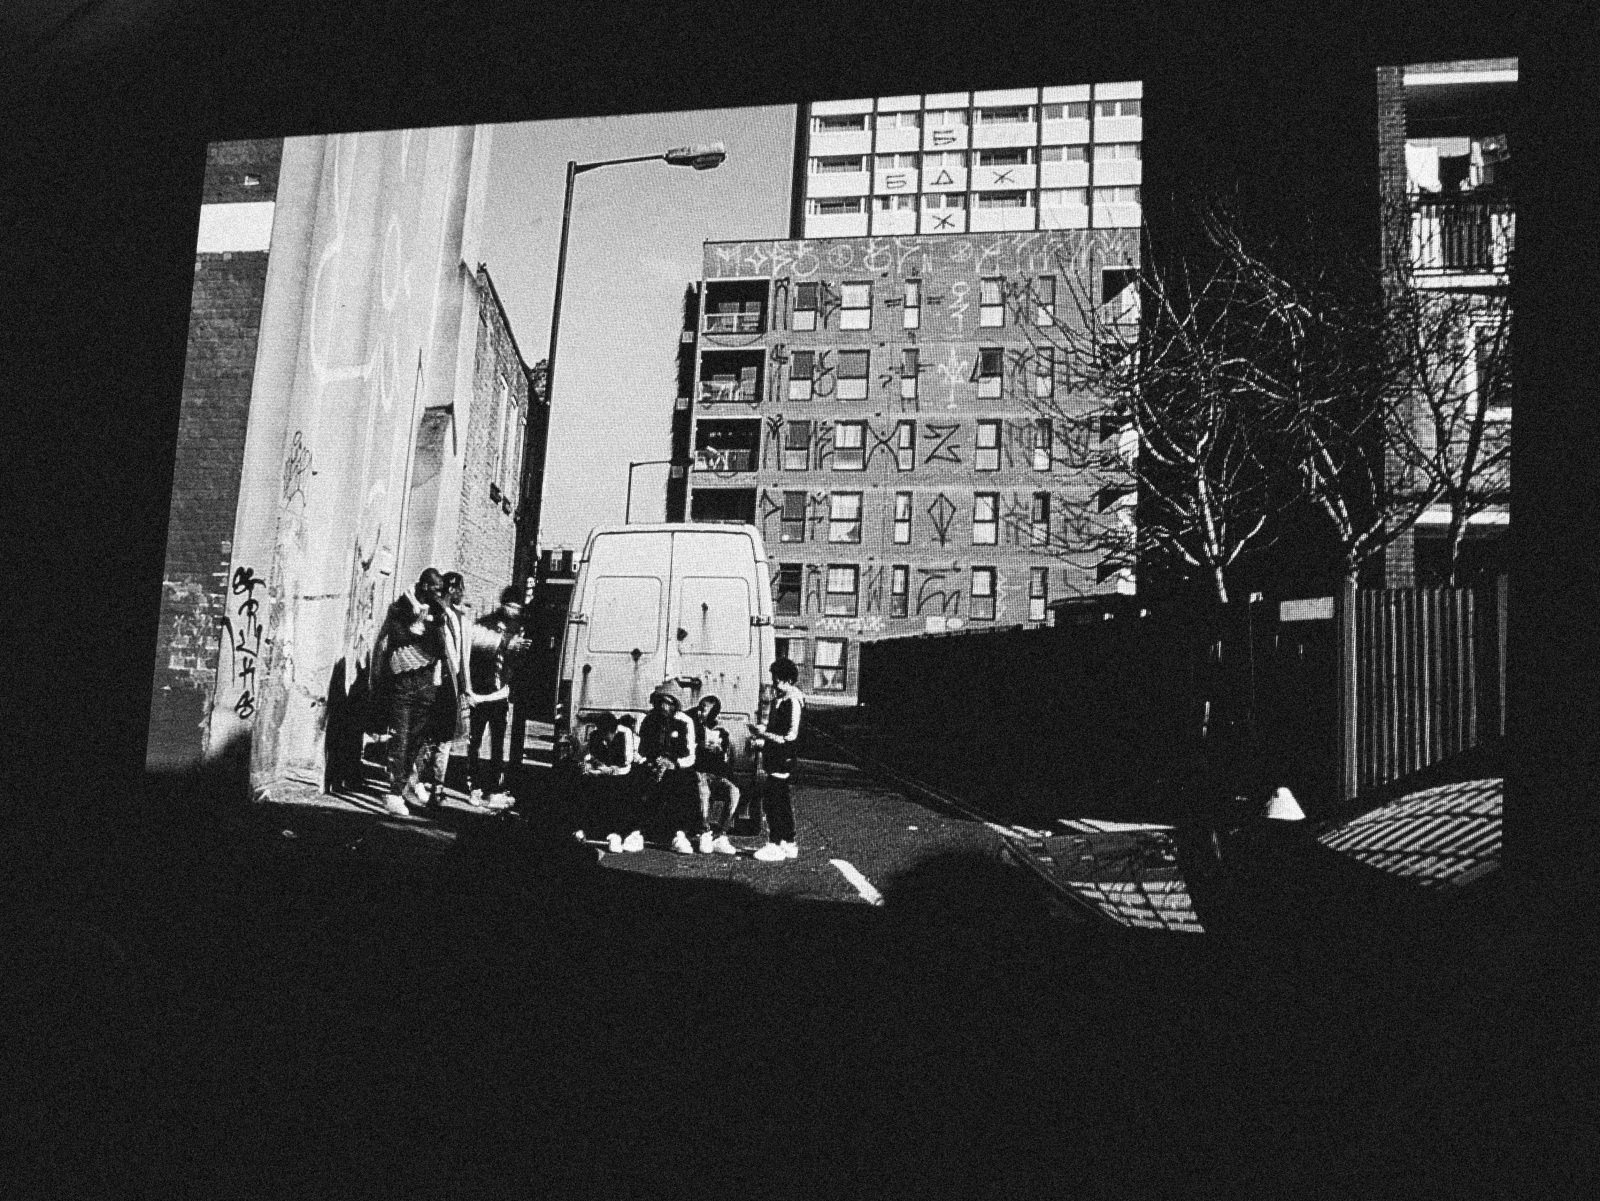 We attended the premiere of A$AP Rocky's new short film